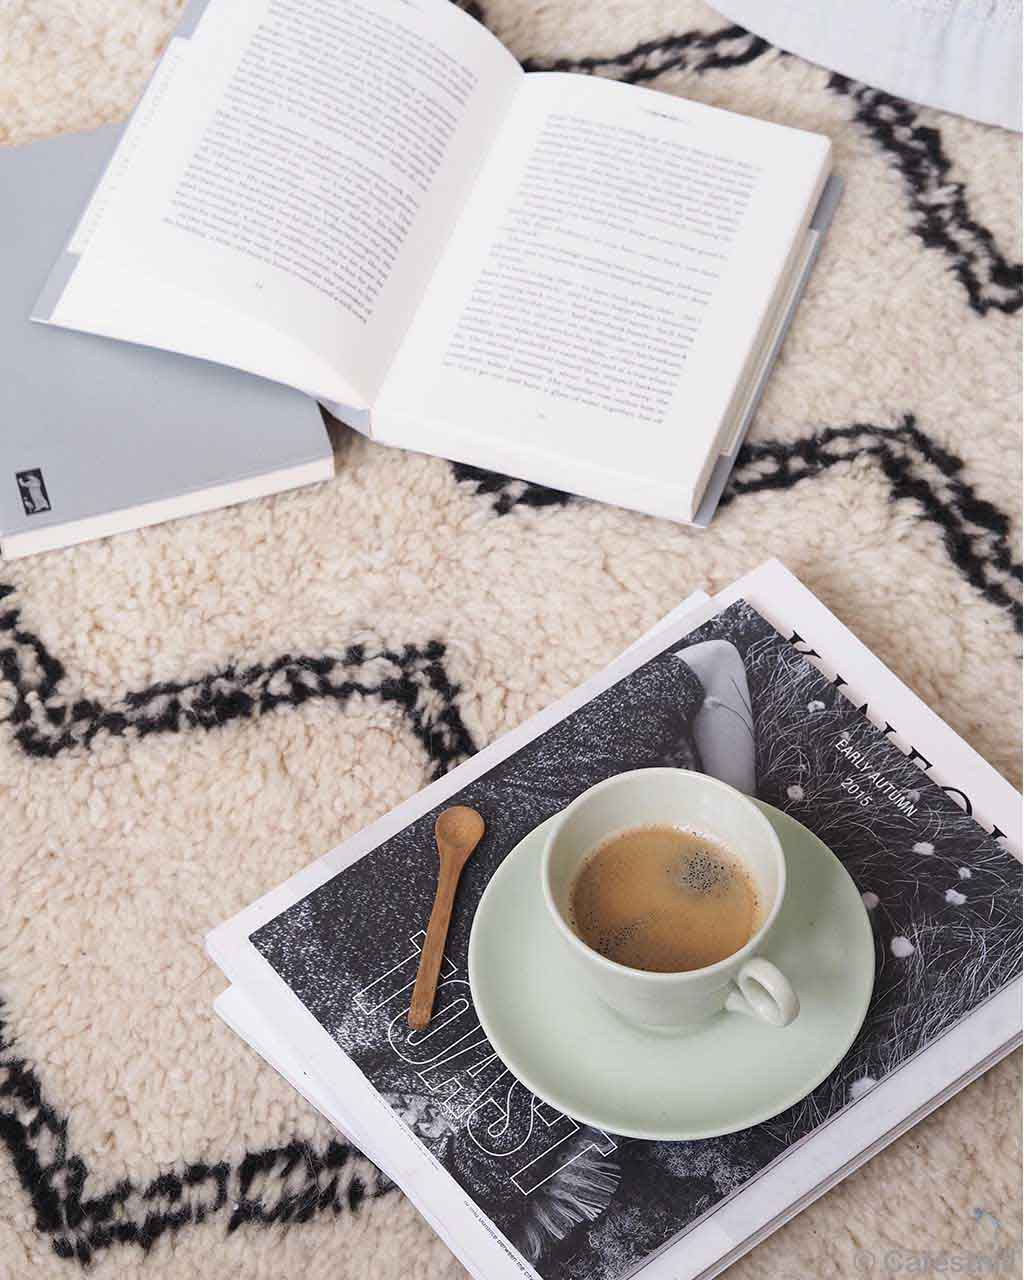 hand knotted books and cup of tea on magazine oriental rugs